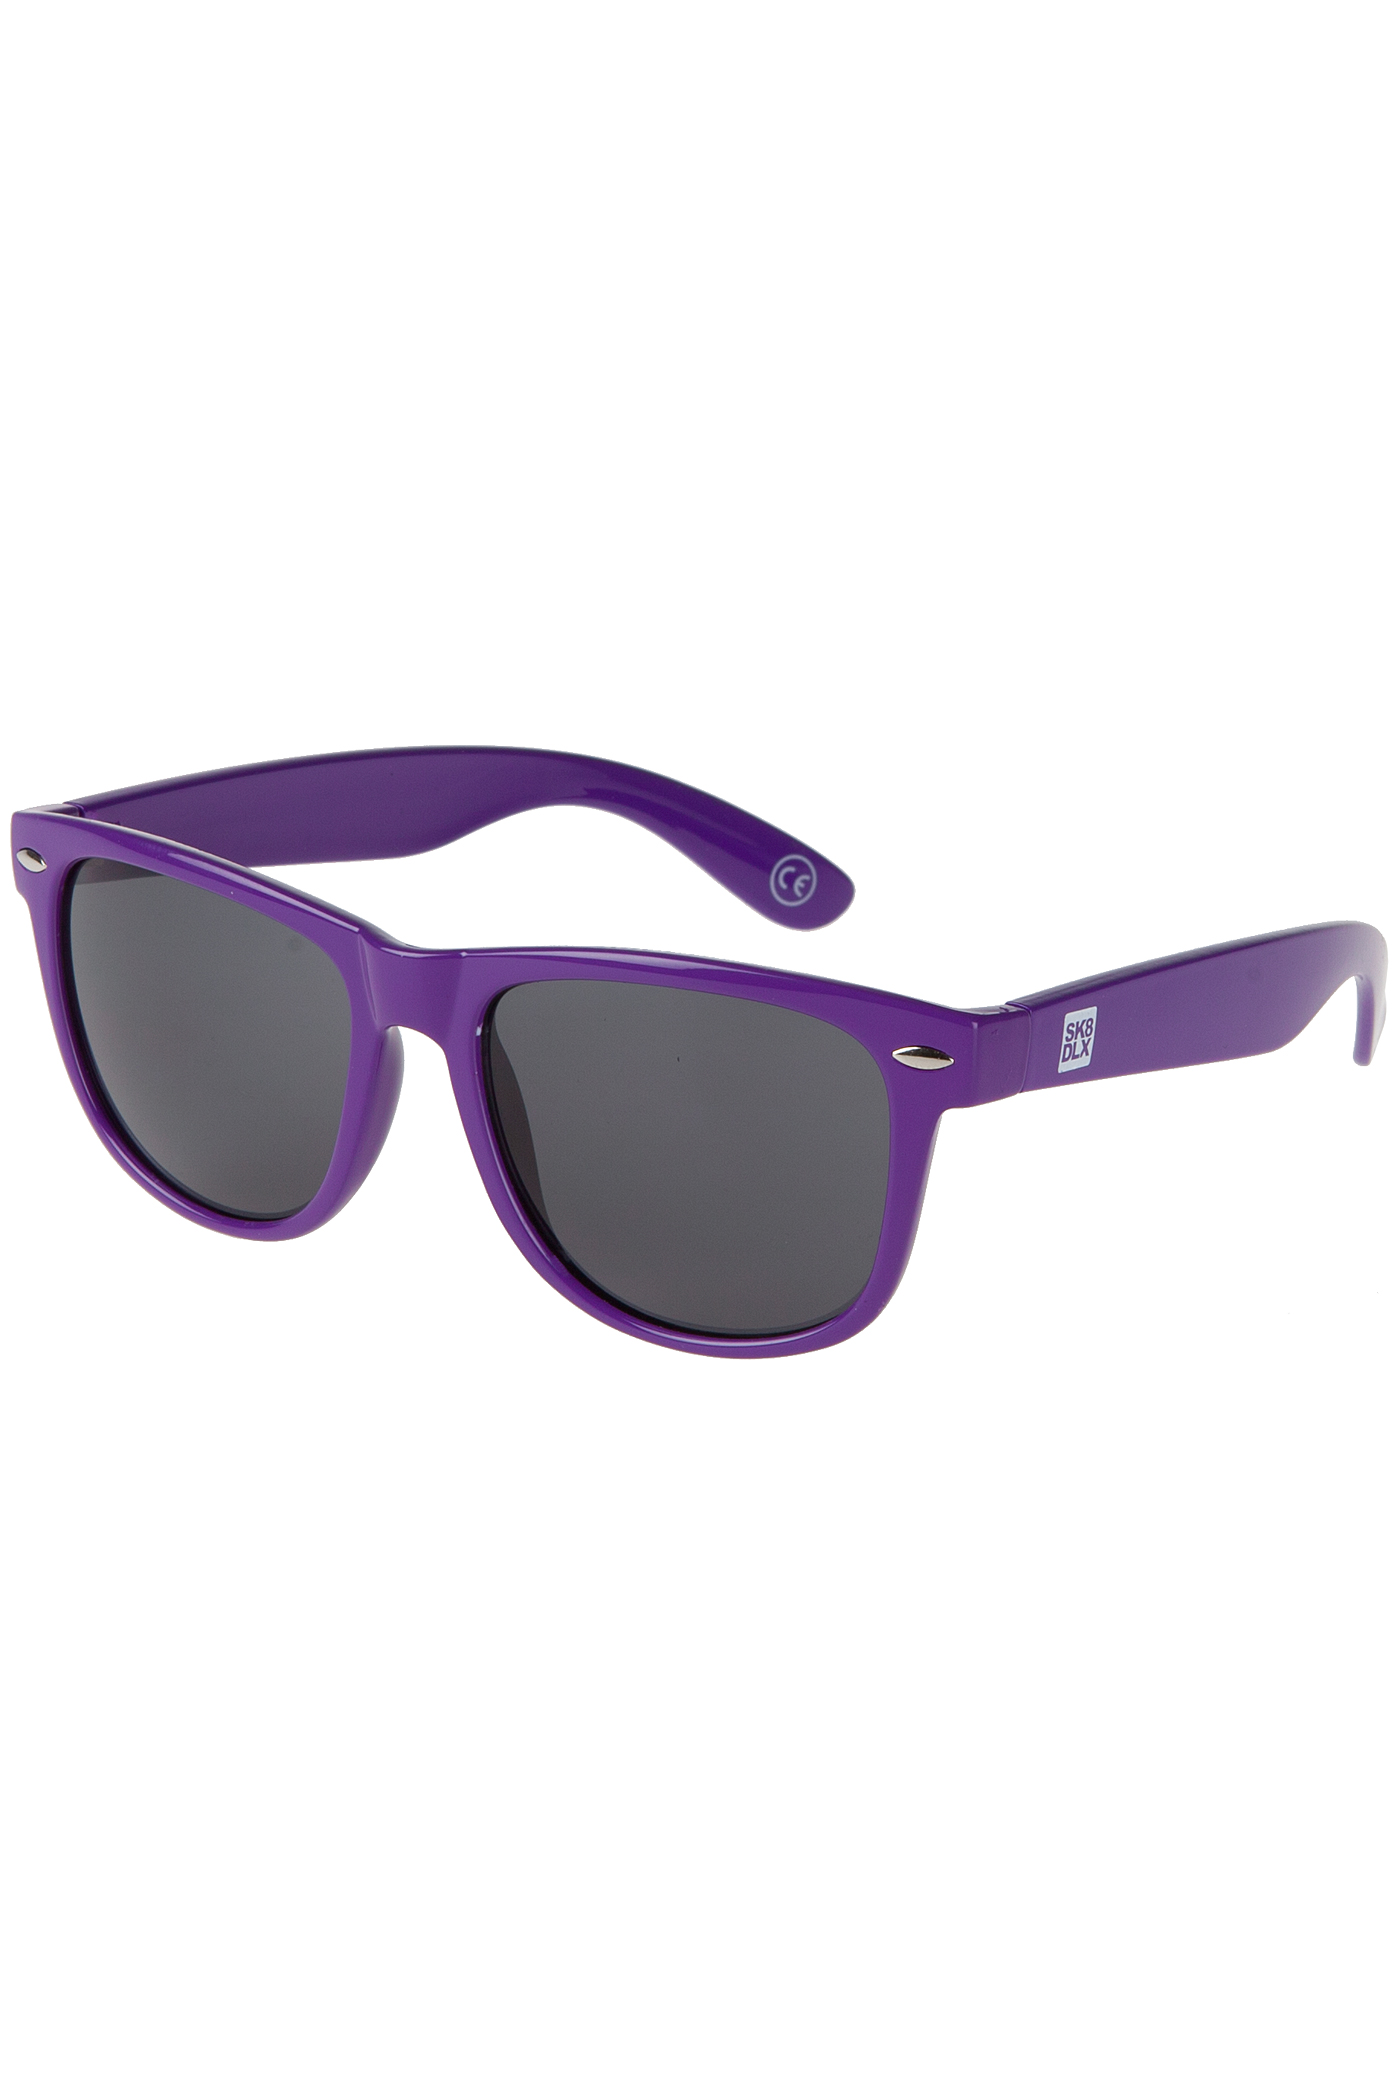 SK8DLX Classic Sunglasses (psychedelic purple) buy at ...